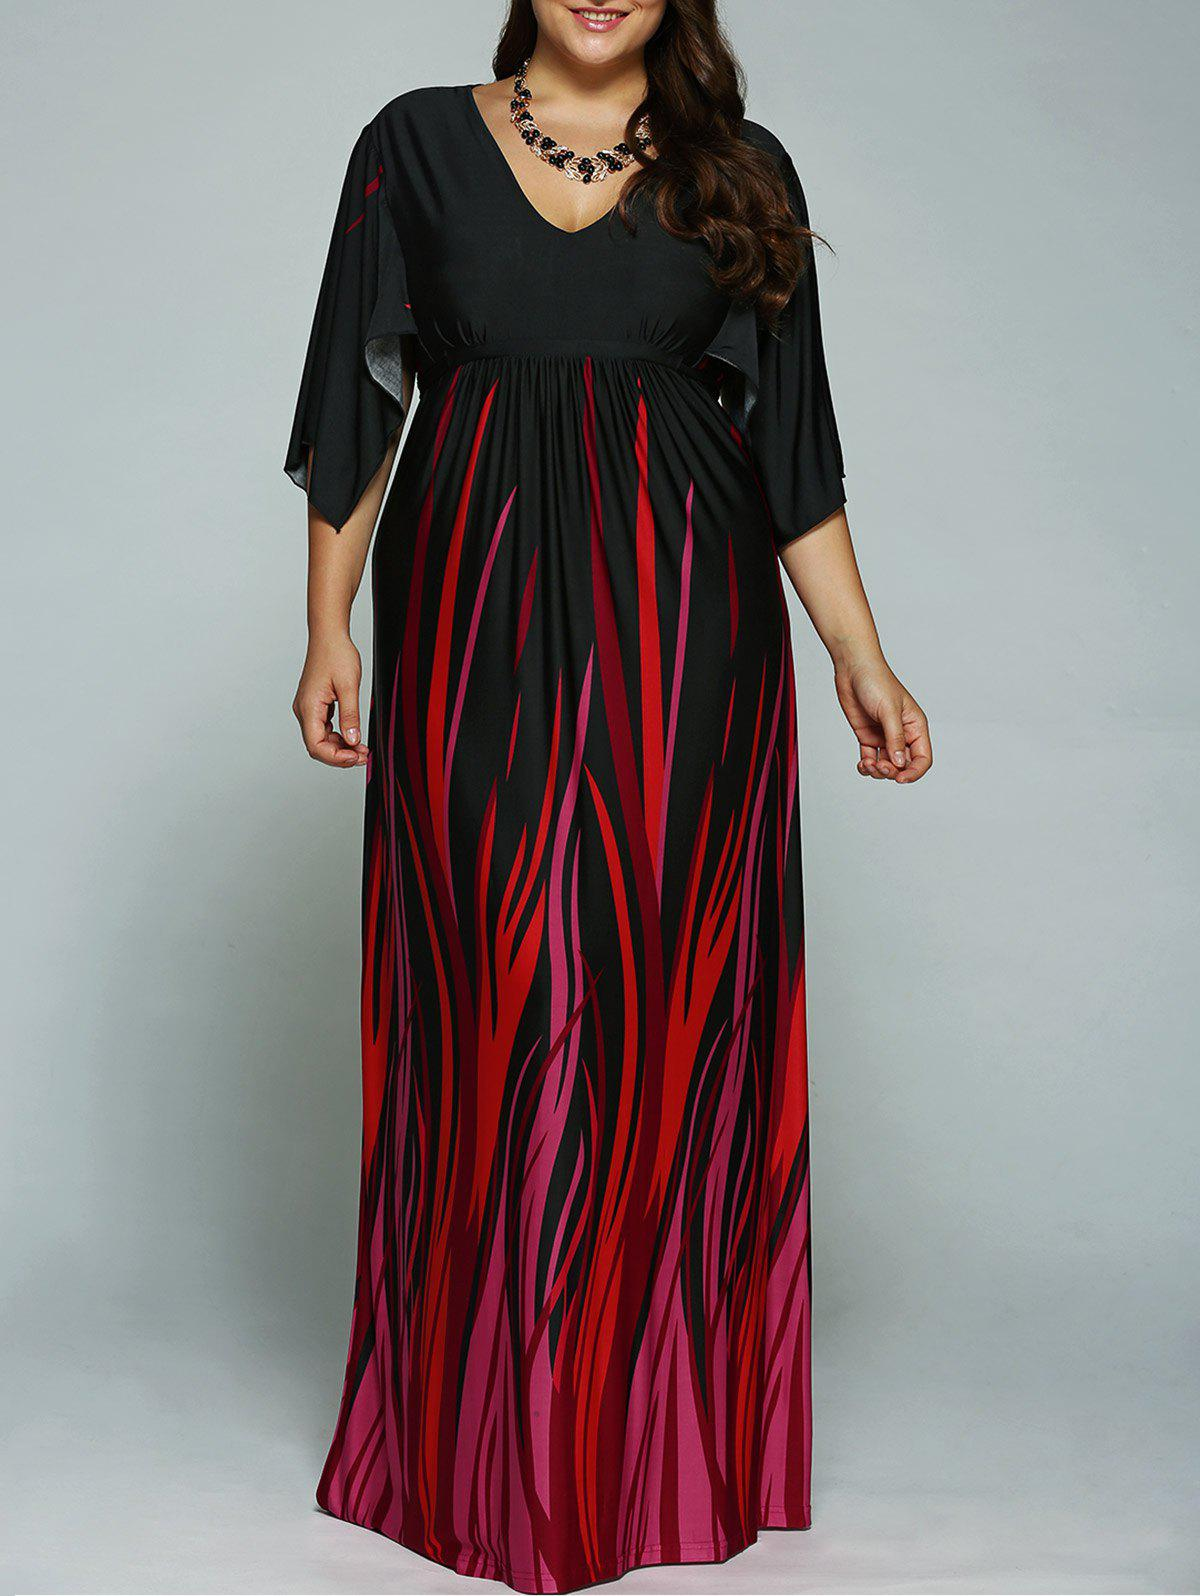 A Line Empire Waist Printed Plus Size Formal Maxi Dress with Batwing Sleeves iolani plus size new teal printed empire waist maxi dress 2x $114 dbfl